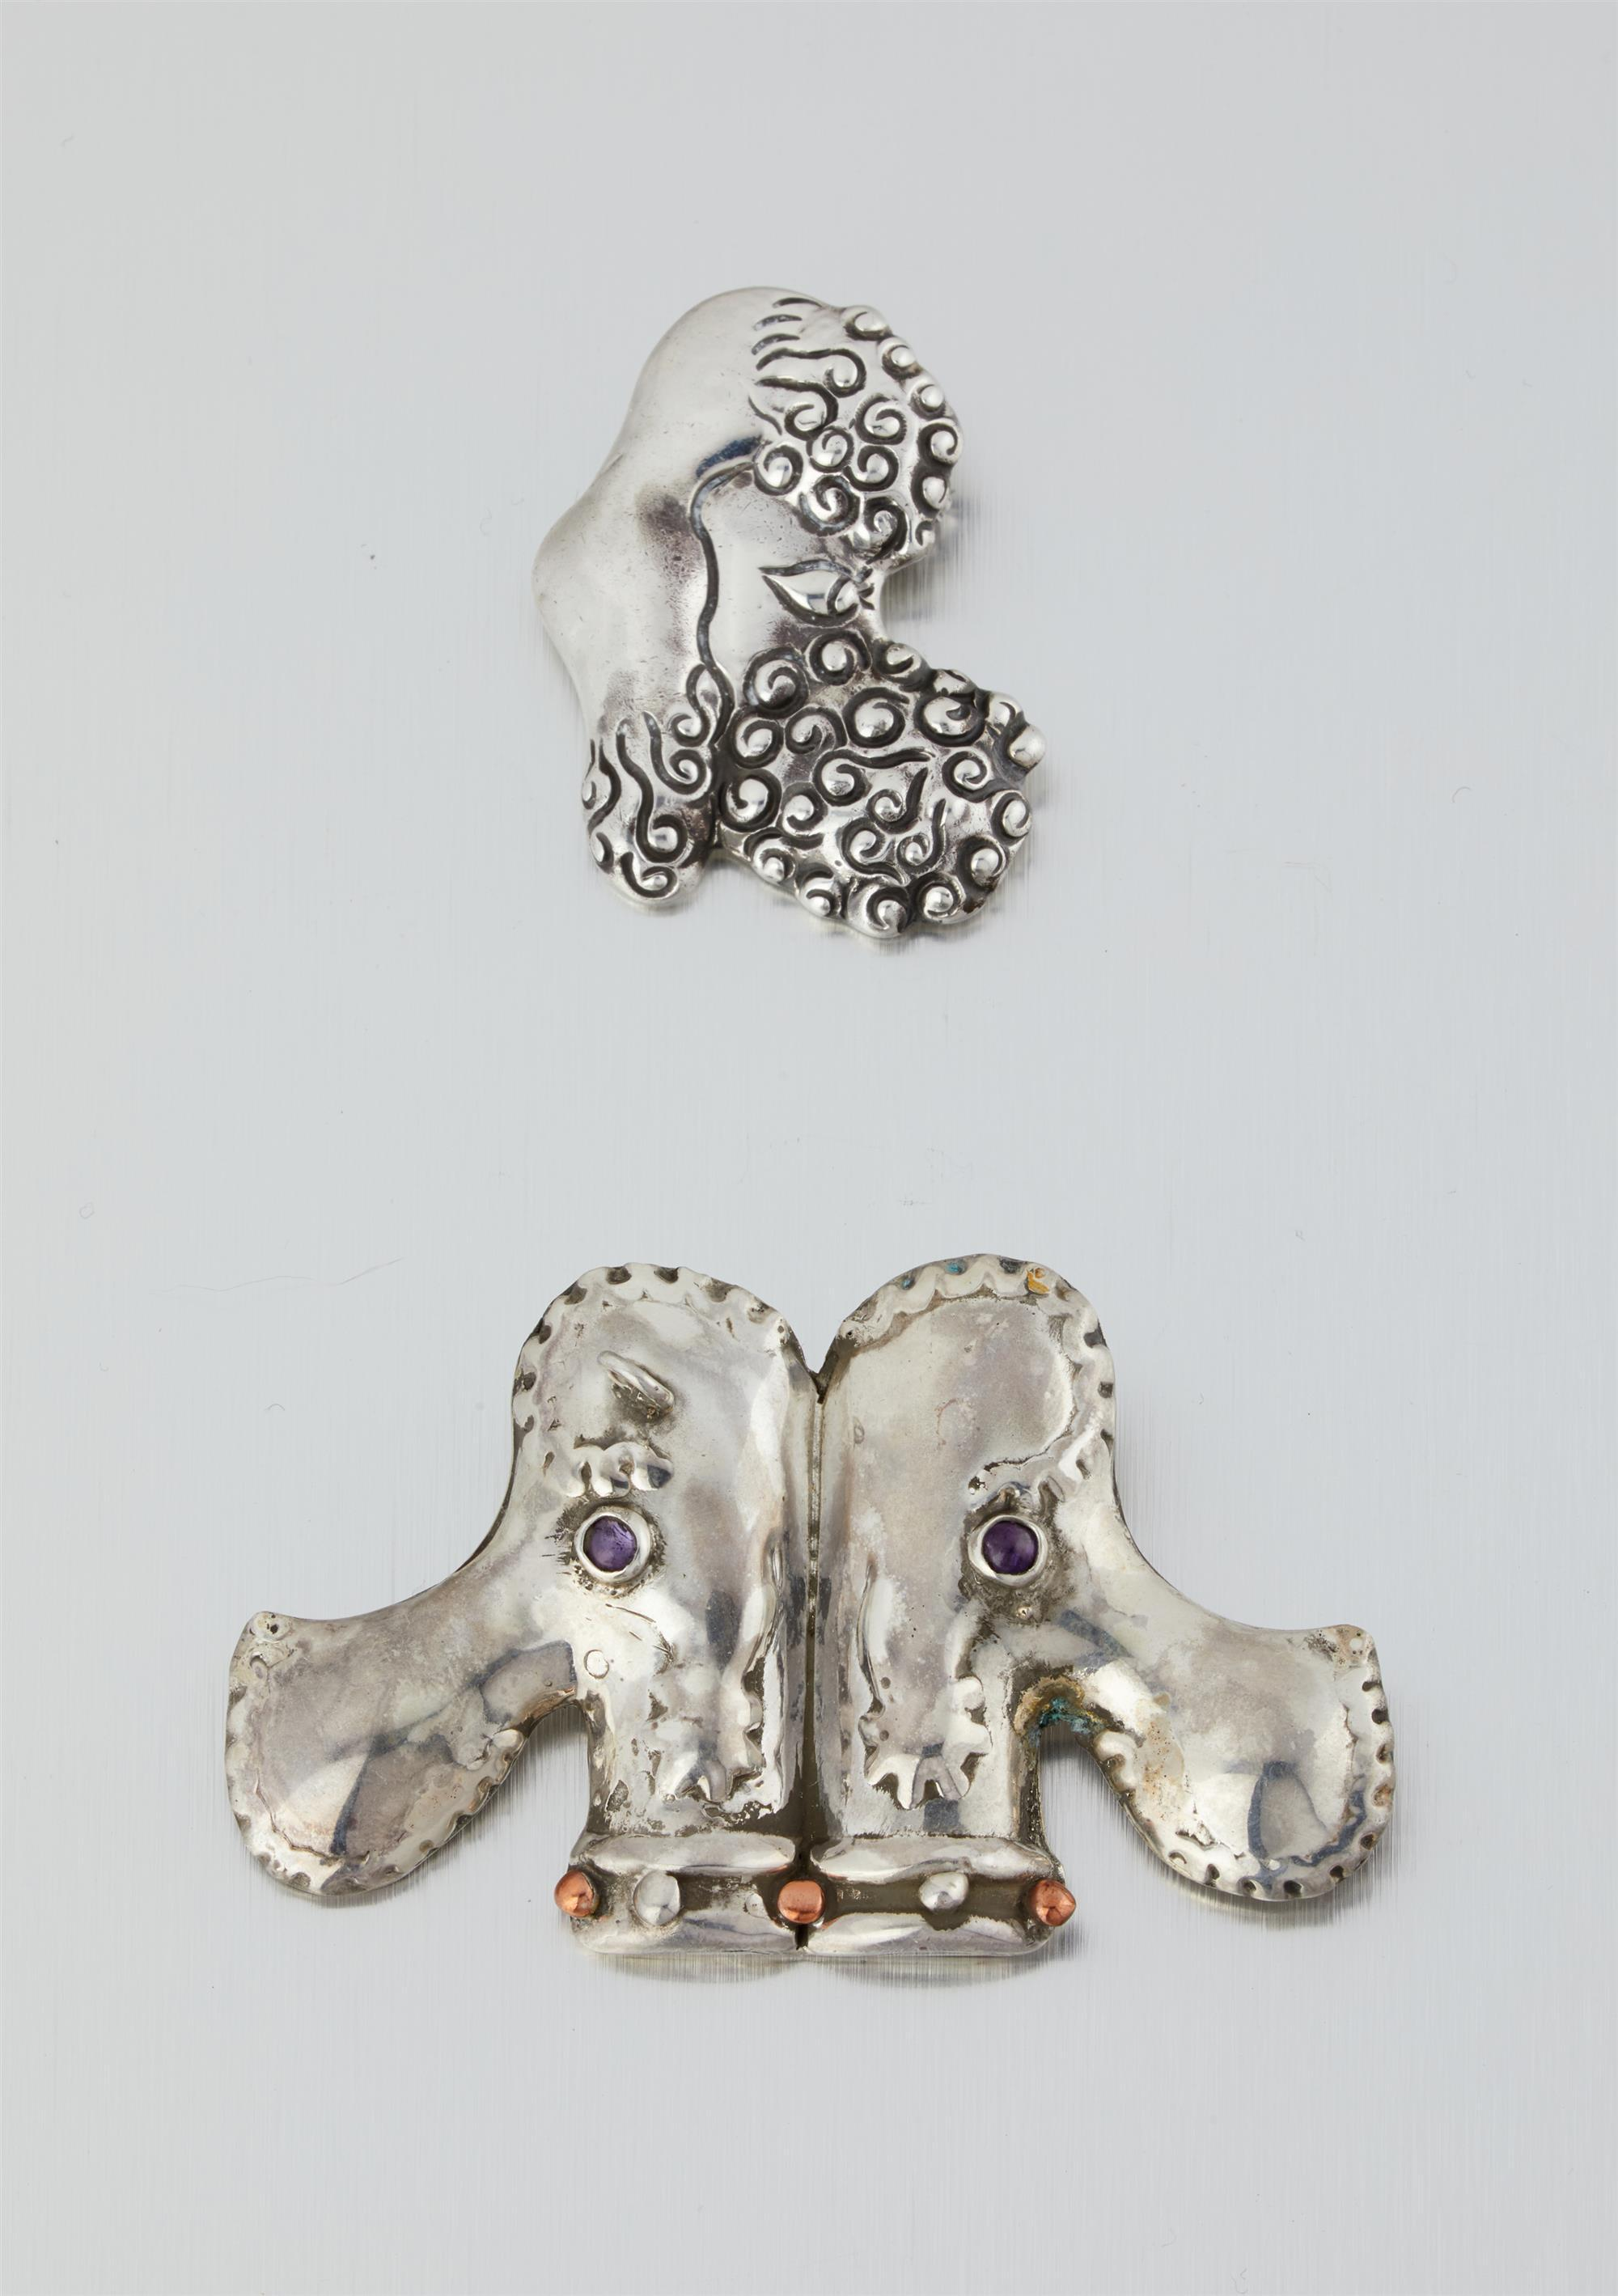 Two Hubert Harmon silver poodle brooches